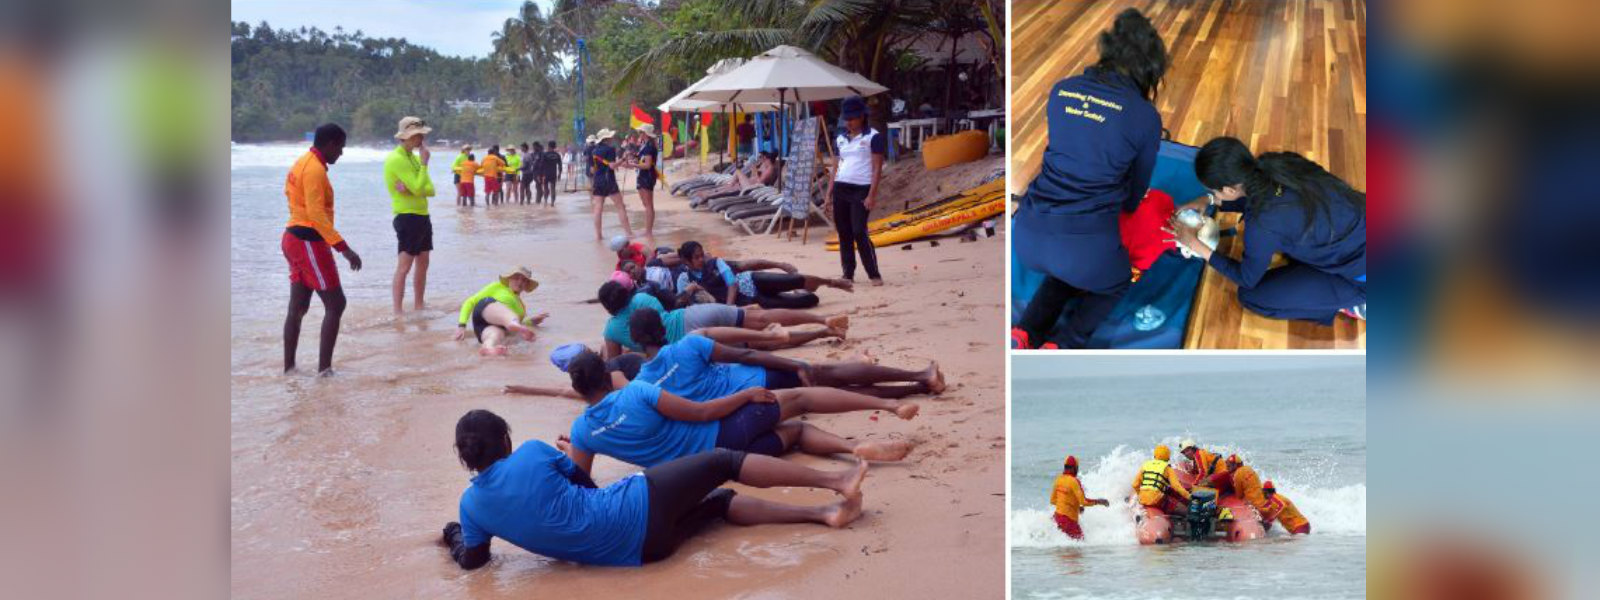 Sri Lanka Life Saving – Taking Action to Prevent Drowning in Sri Lanka